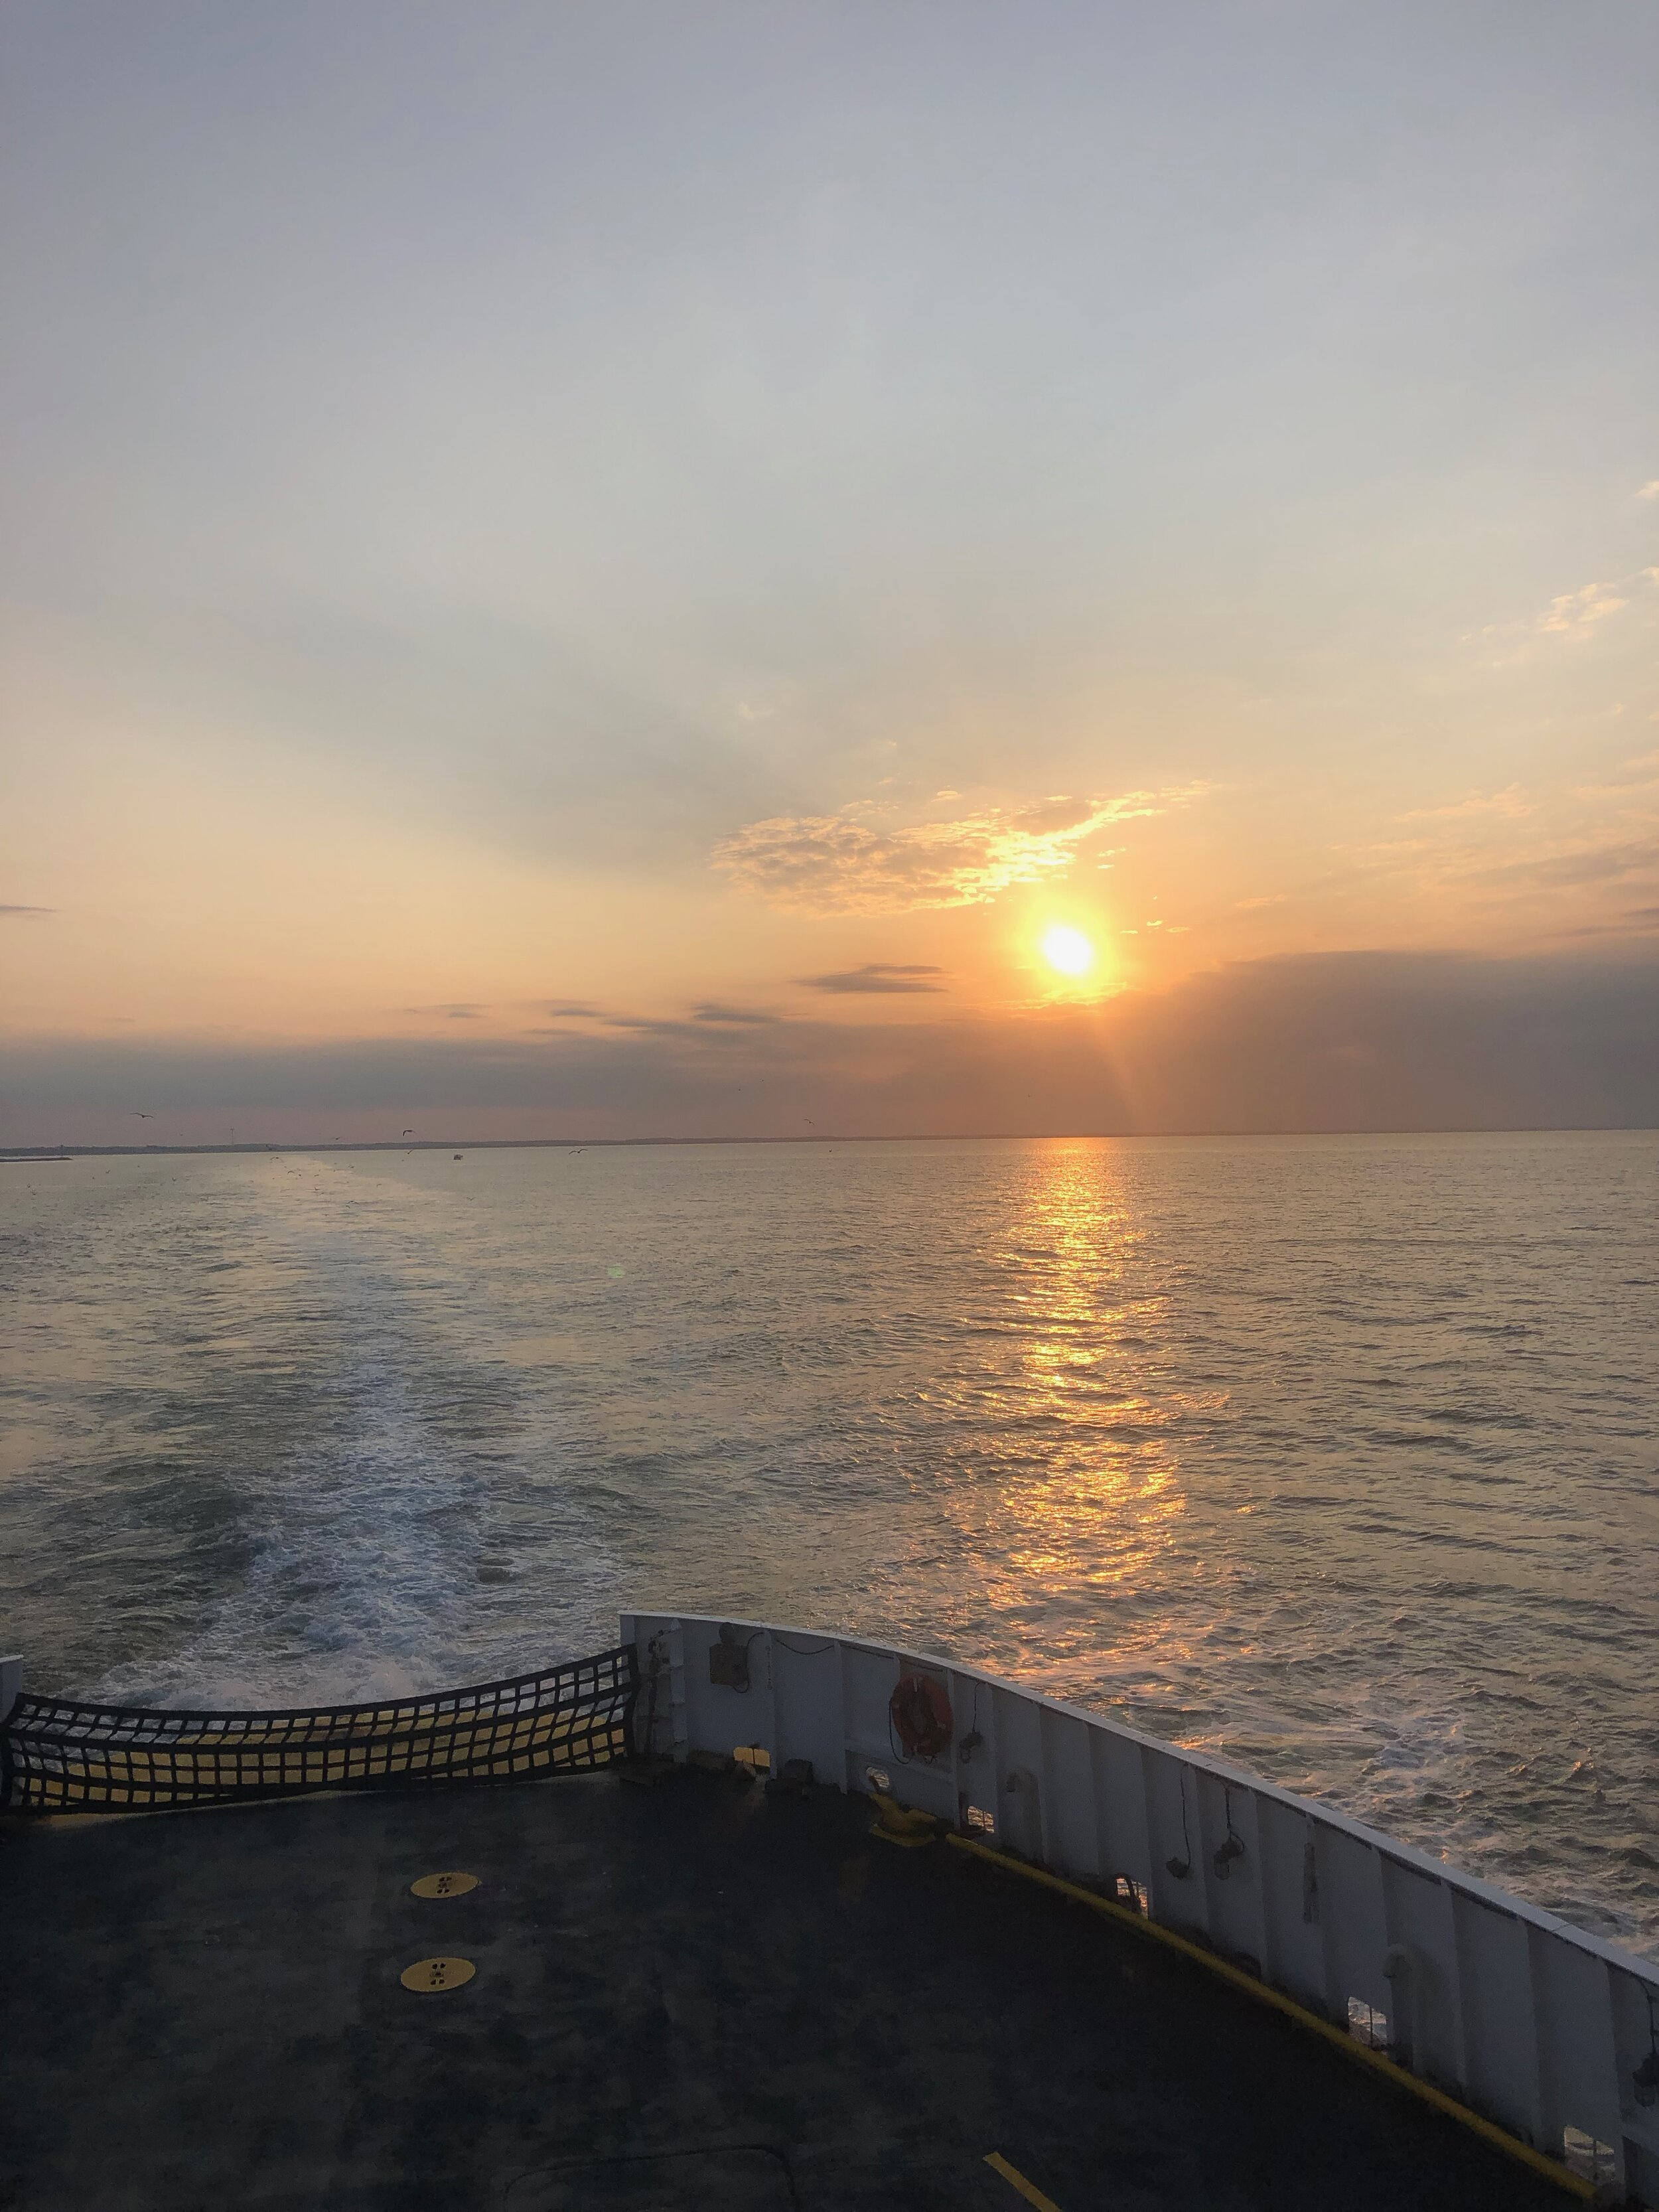 Cape May to Lewes ferry